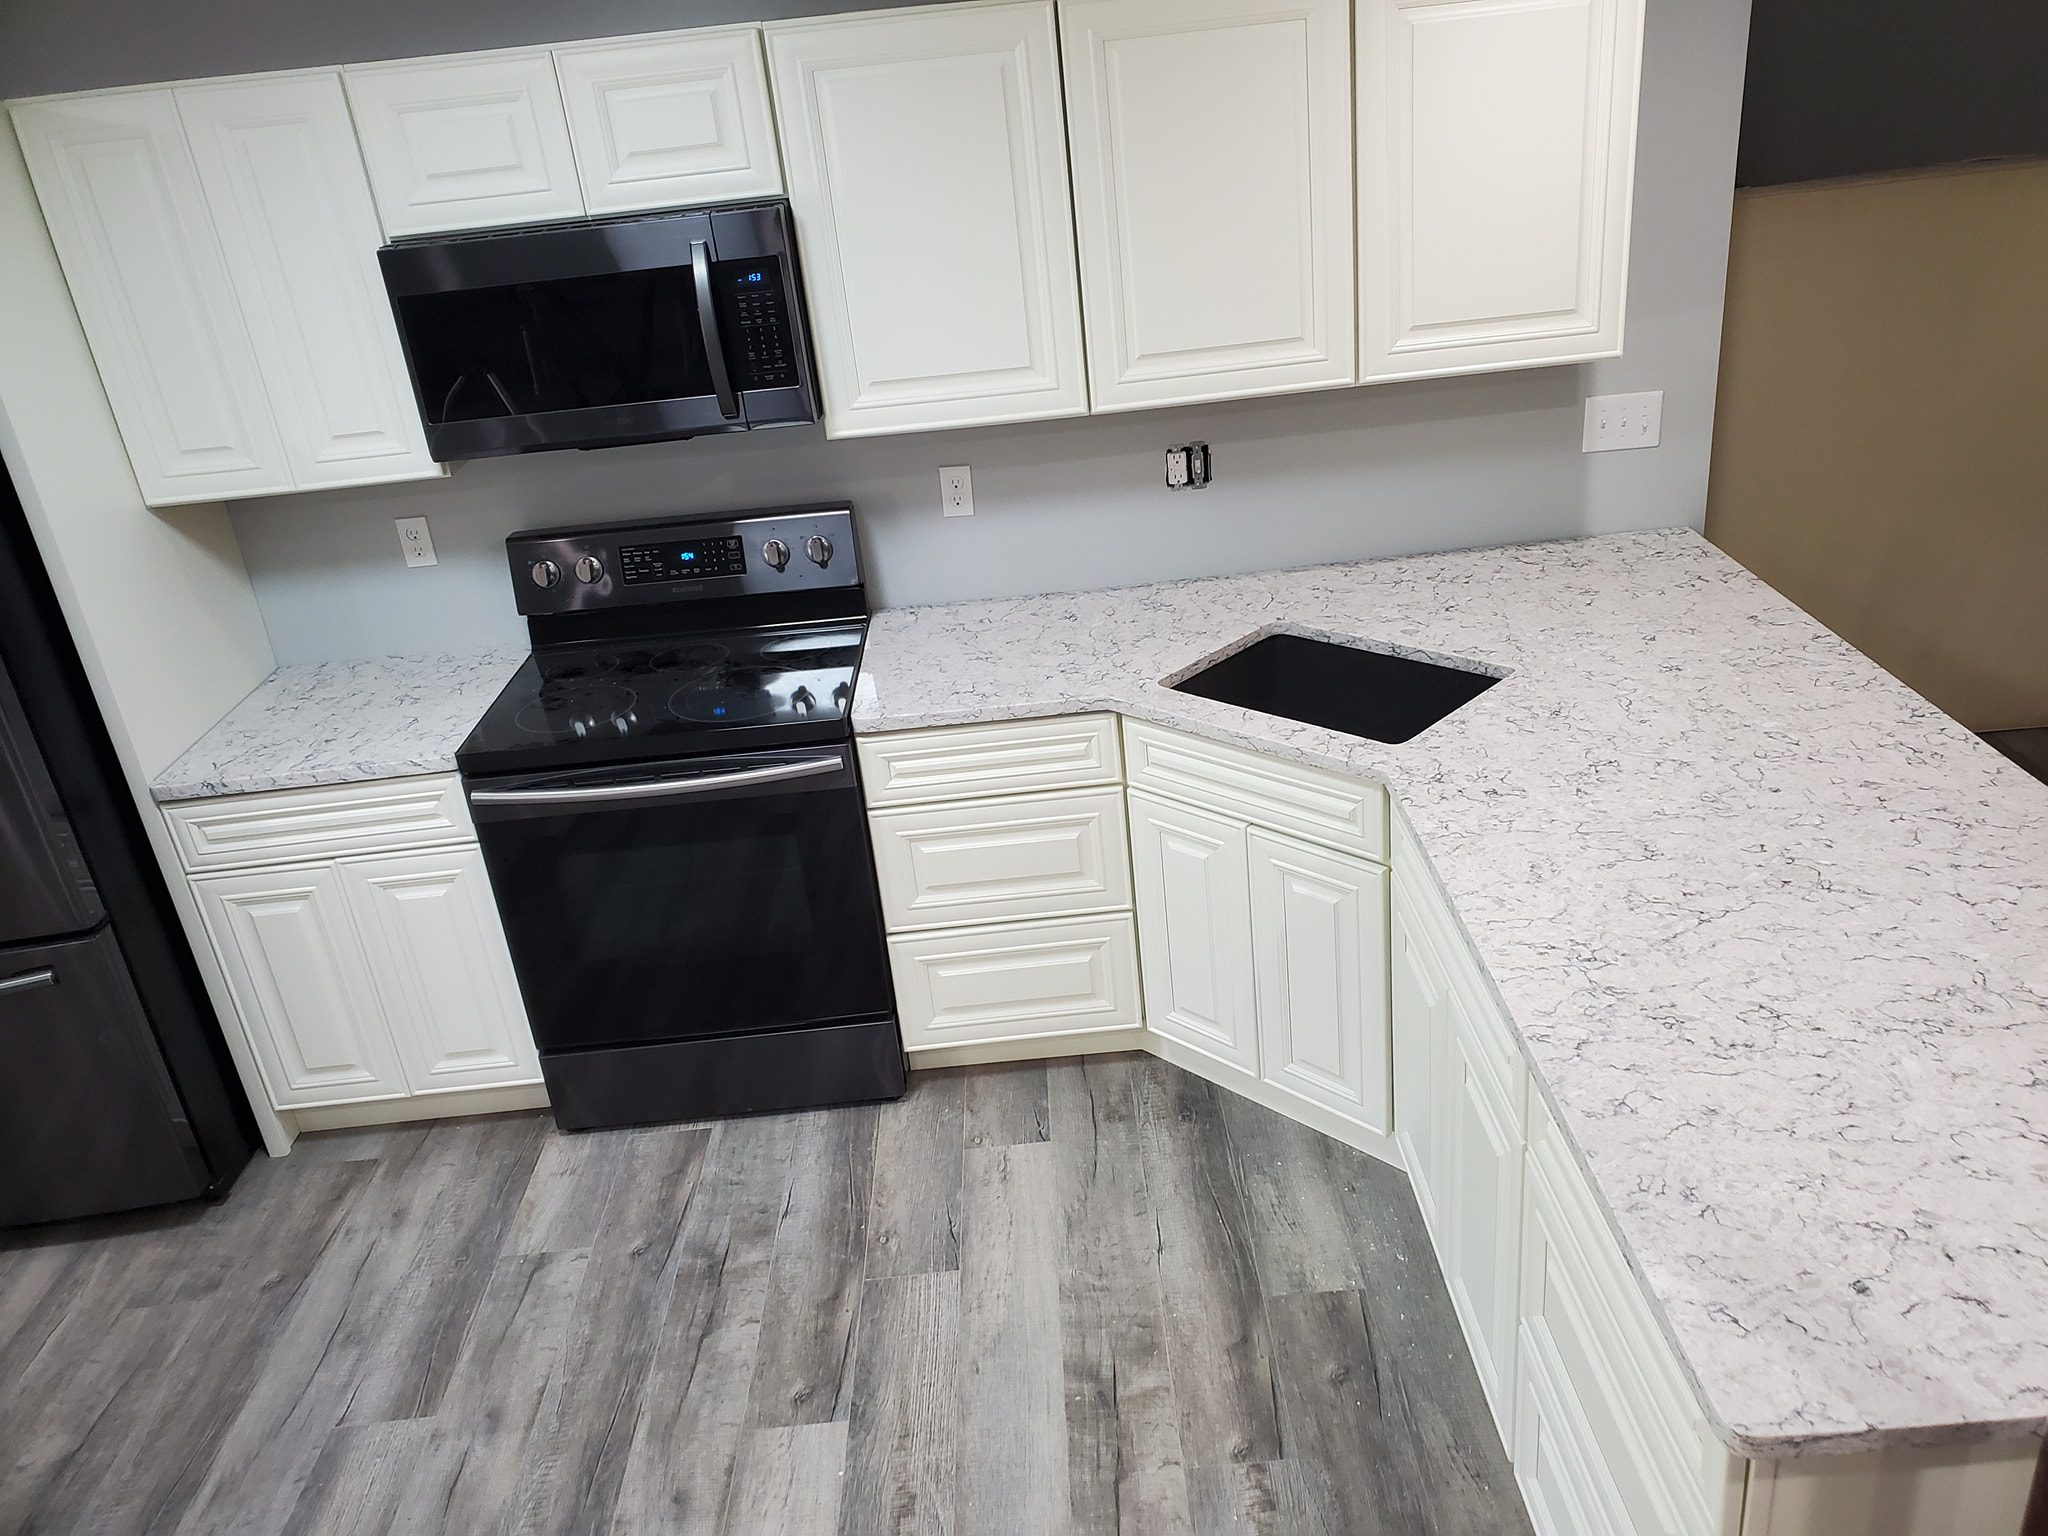 Counter Installation for Kitchen Remodel in Marion IL